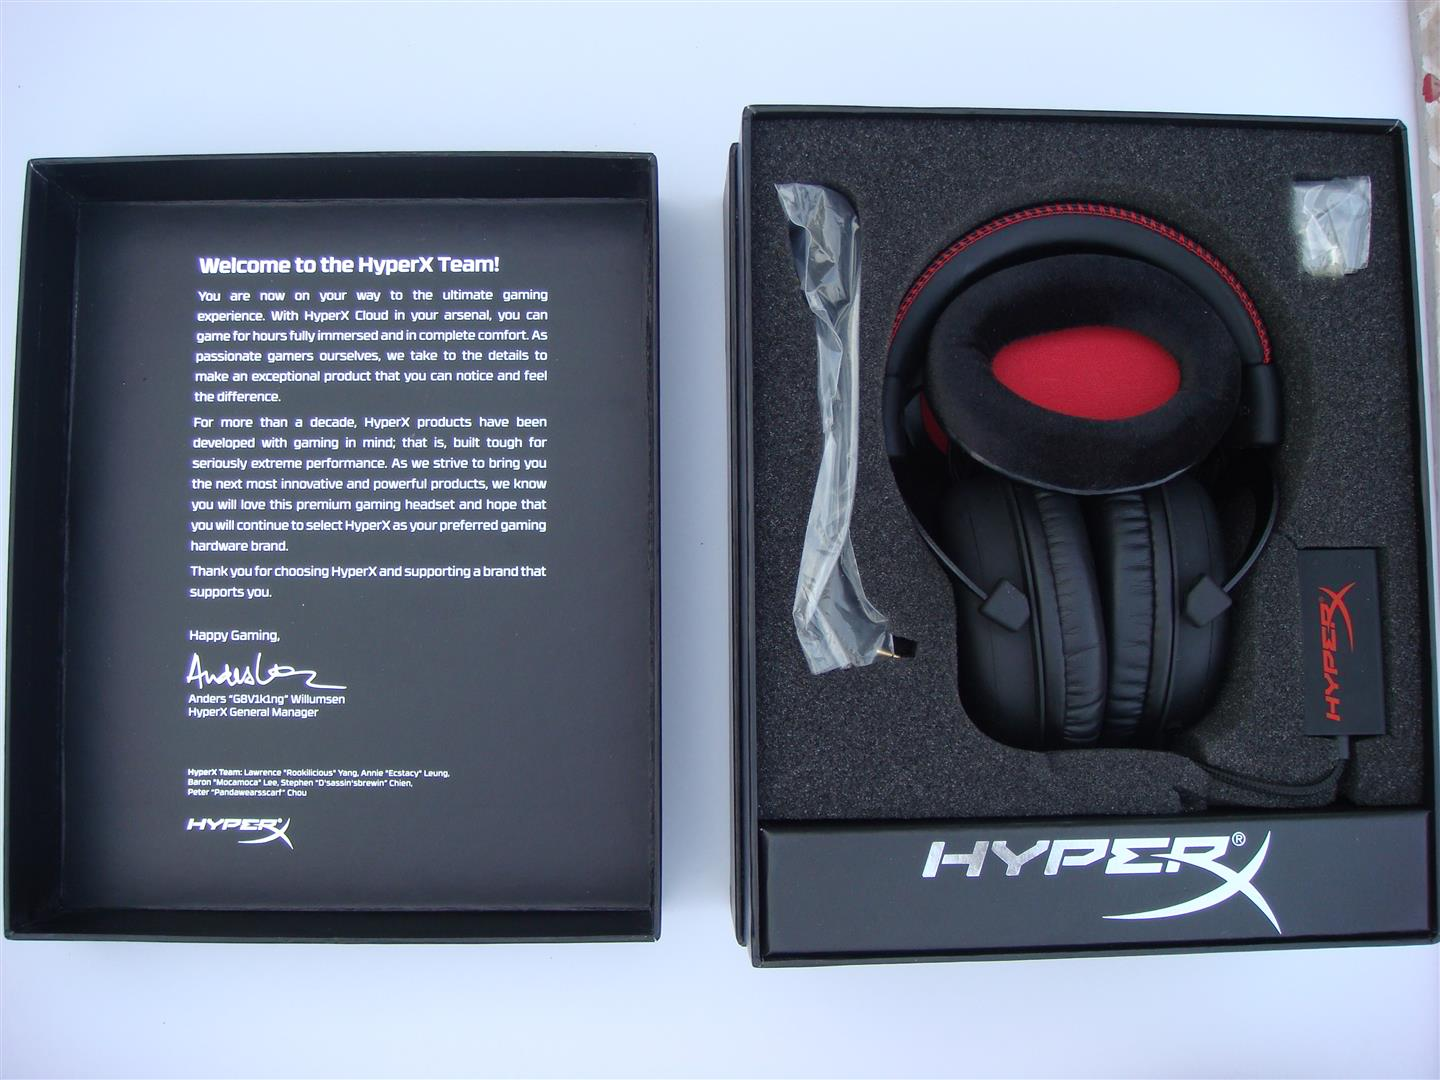 Kind of lining can you expect on the kingston hyperx cloud ii headset - Looks